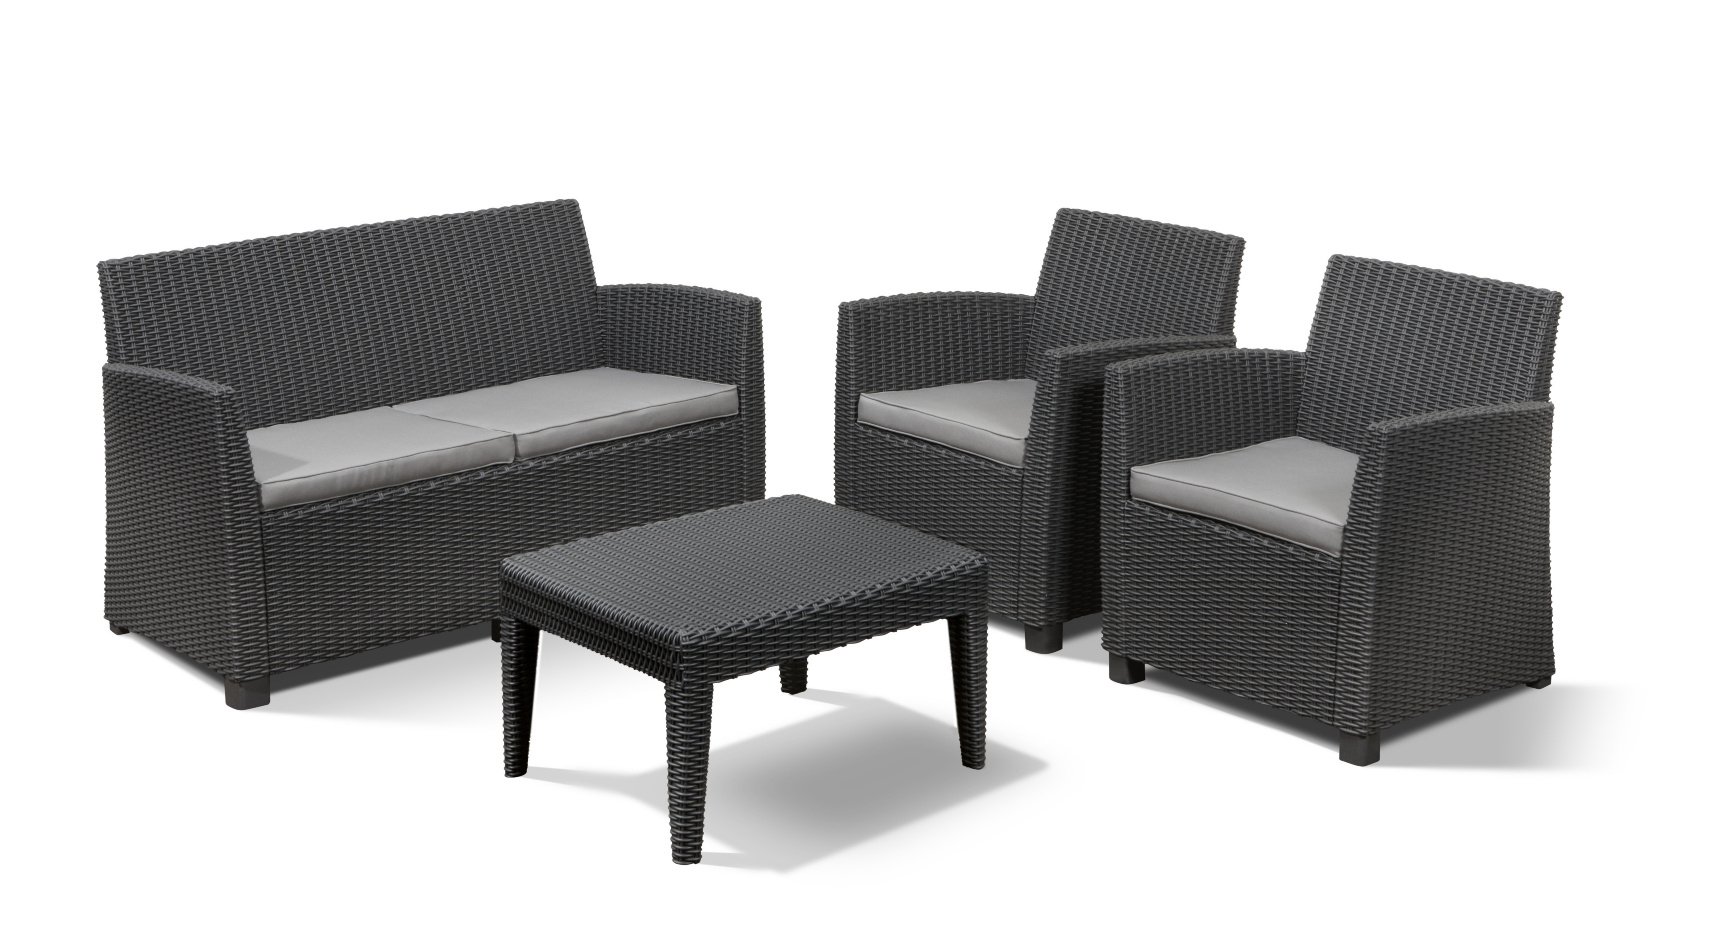 Allibert Corona Lounge Set Graphite - Allibert pour Salon De Jardin Corona